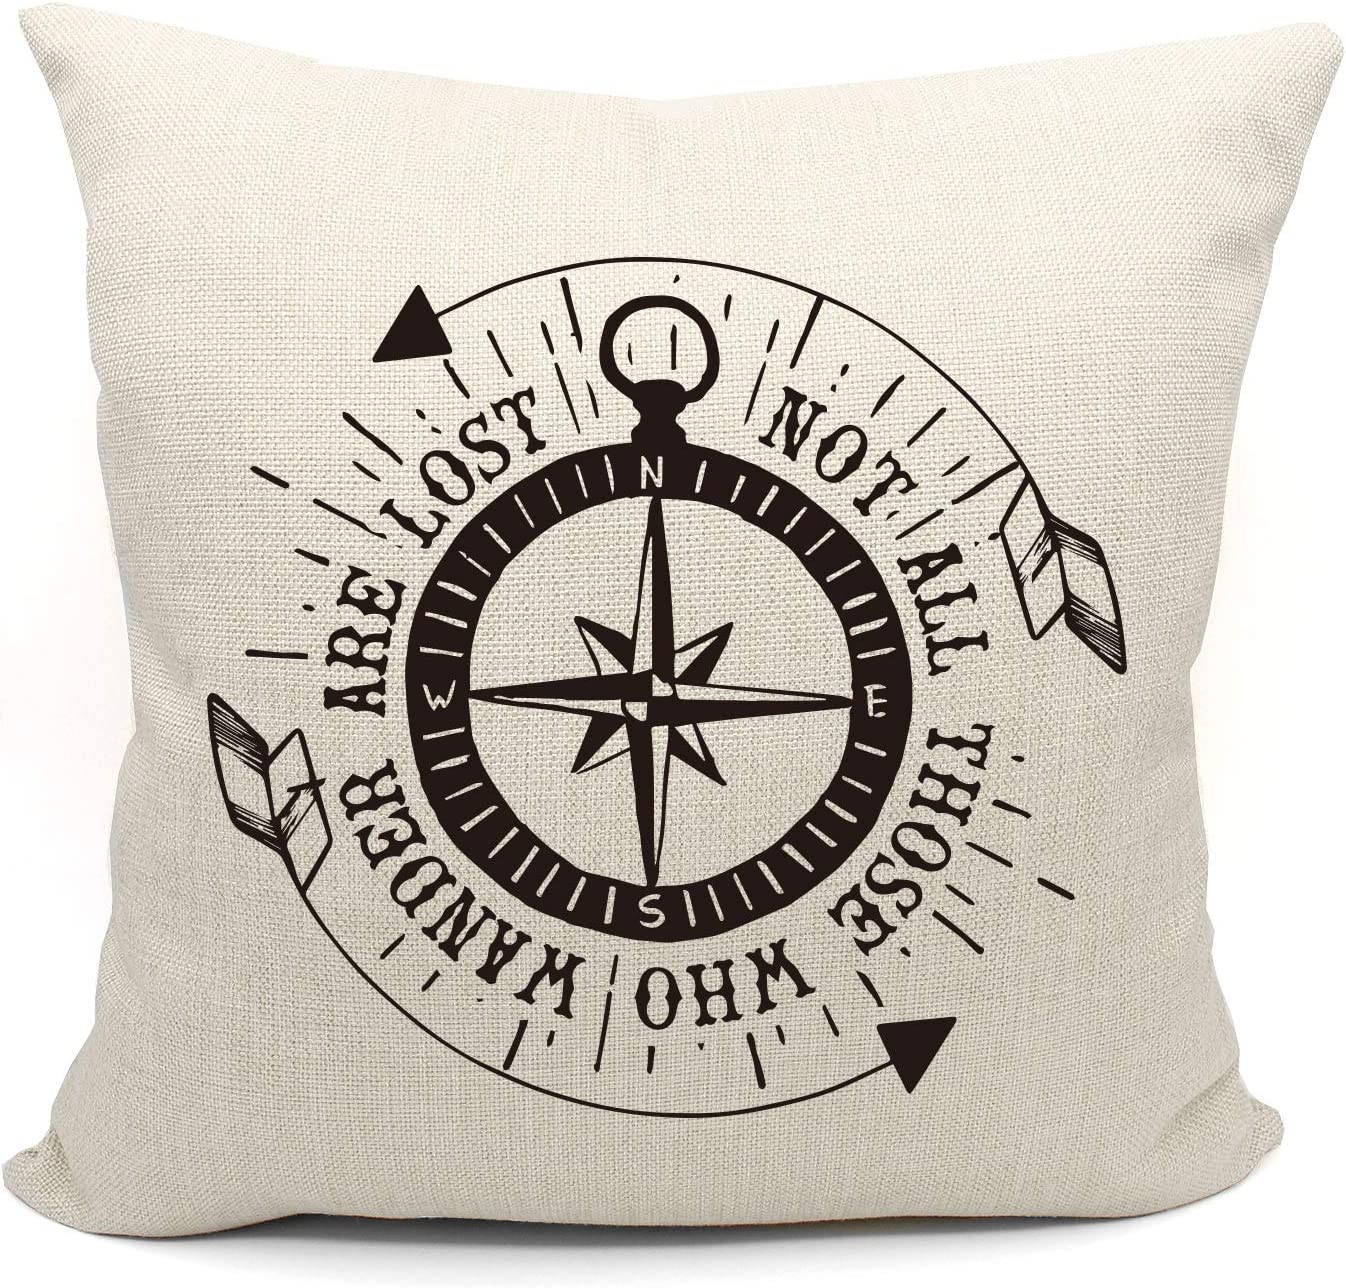 Not All Those Who Wander are Lost Throw Pillow Case, Gift to Vintage camper, Campers Gifts, Camper Decor, 18 x 18 Inch Nautical Compass Style Decorative Cotton Linen Cushion Cover for Sofa Couch Bed